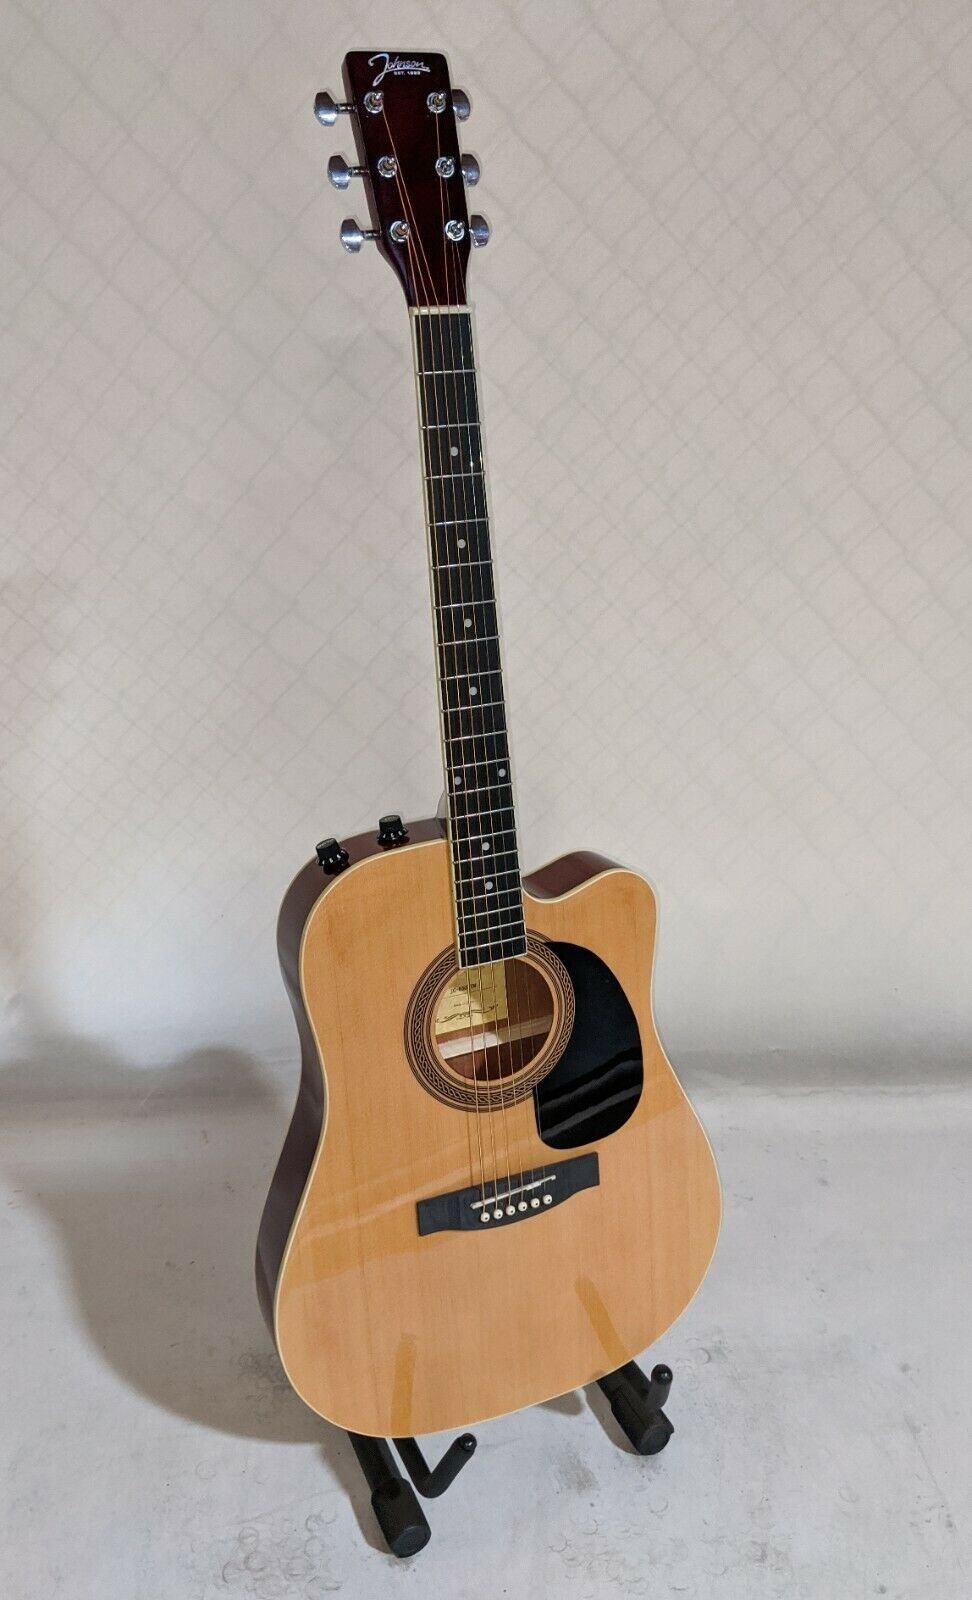 s l1600 - Johnson JG-650-TN Thinbody Acoustic Electric Guitar, Natural